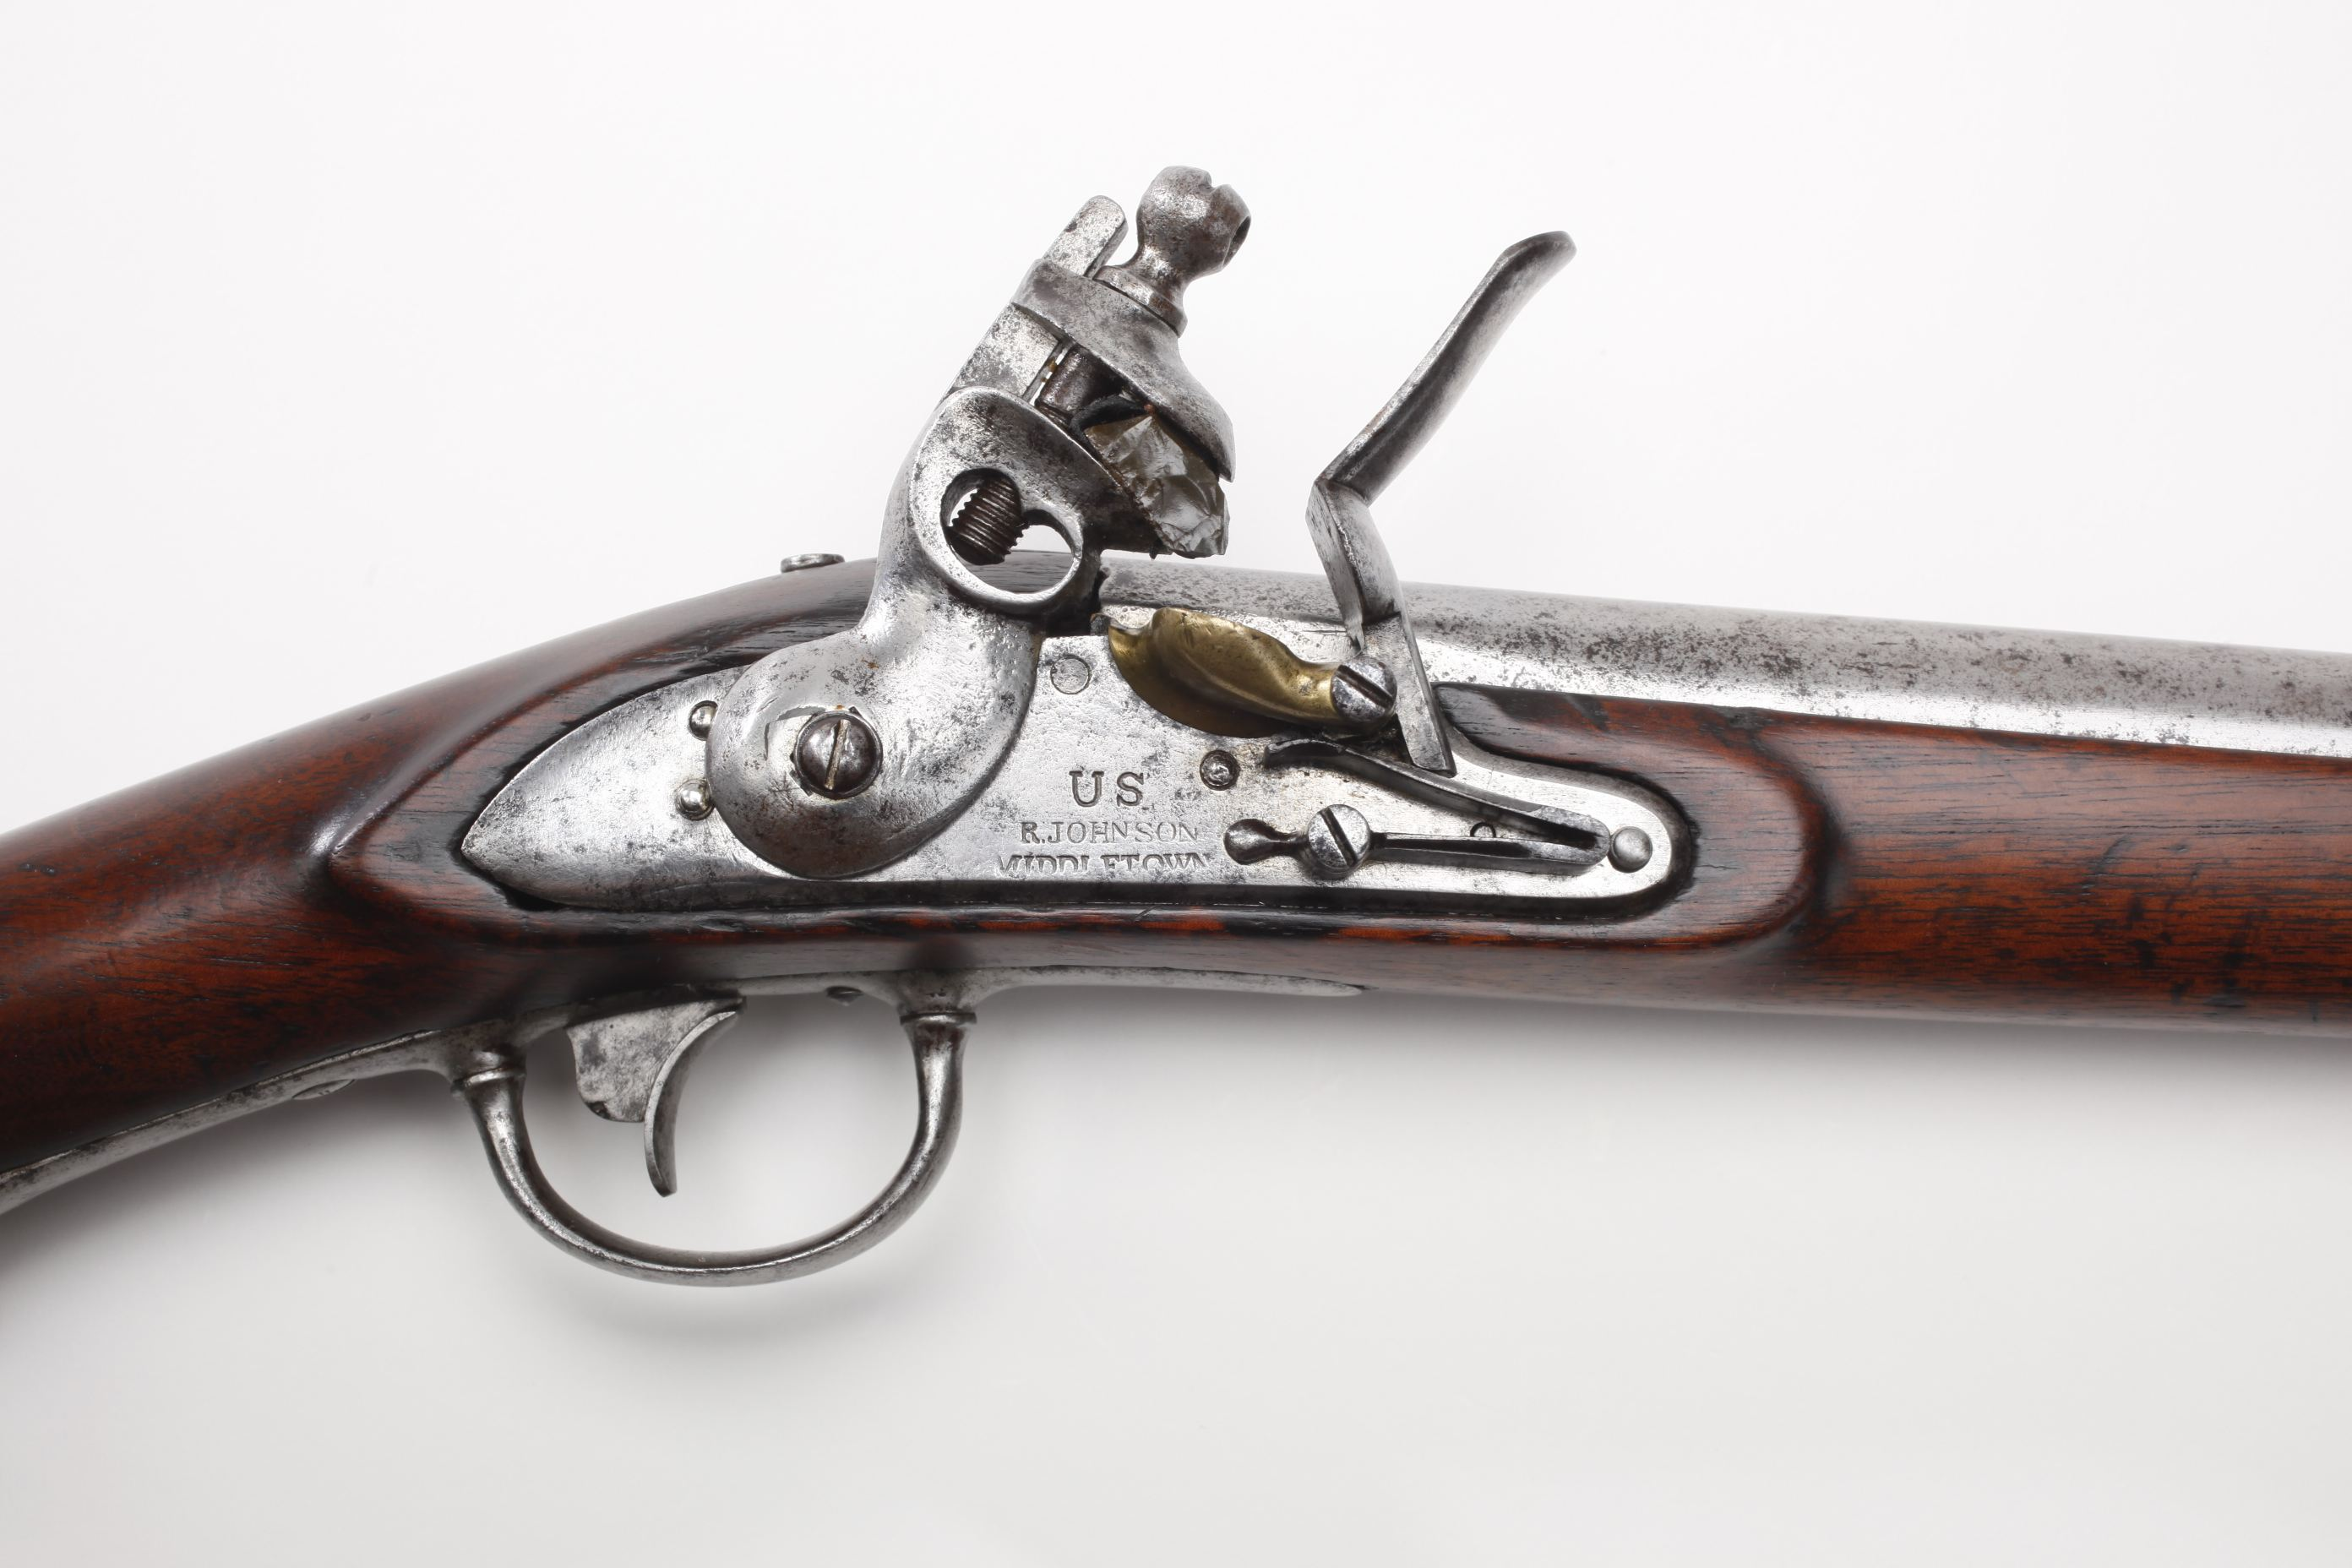 U.S. Robert and J. D. Johnson 1817 Common Rifle